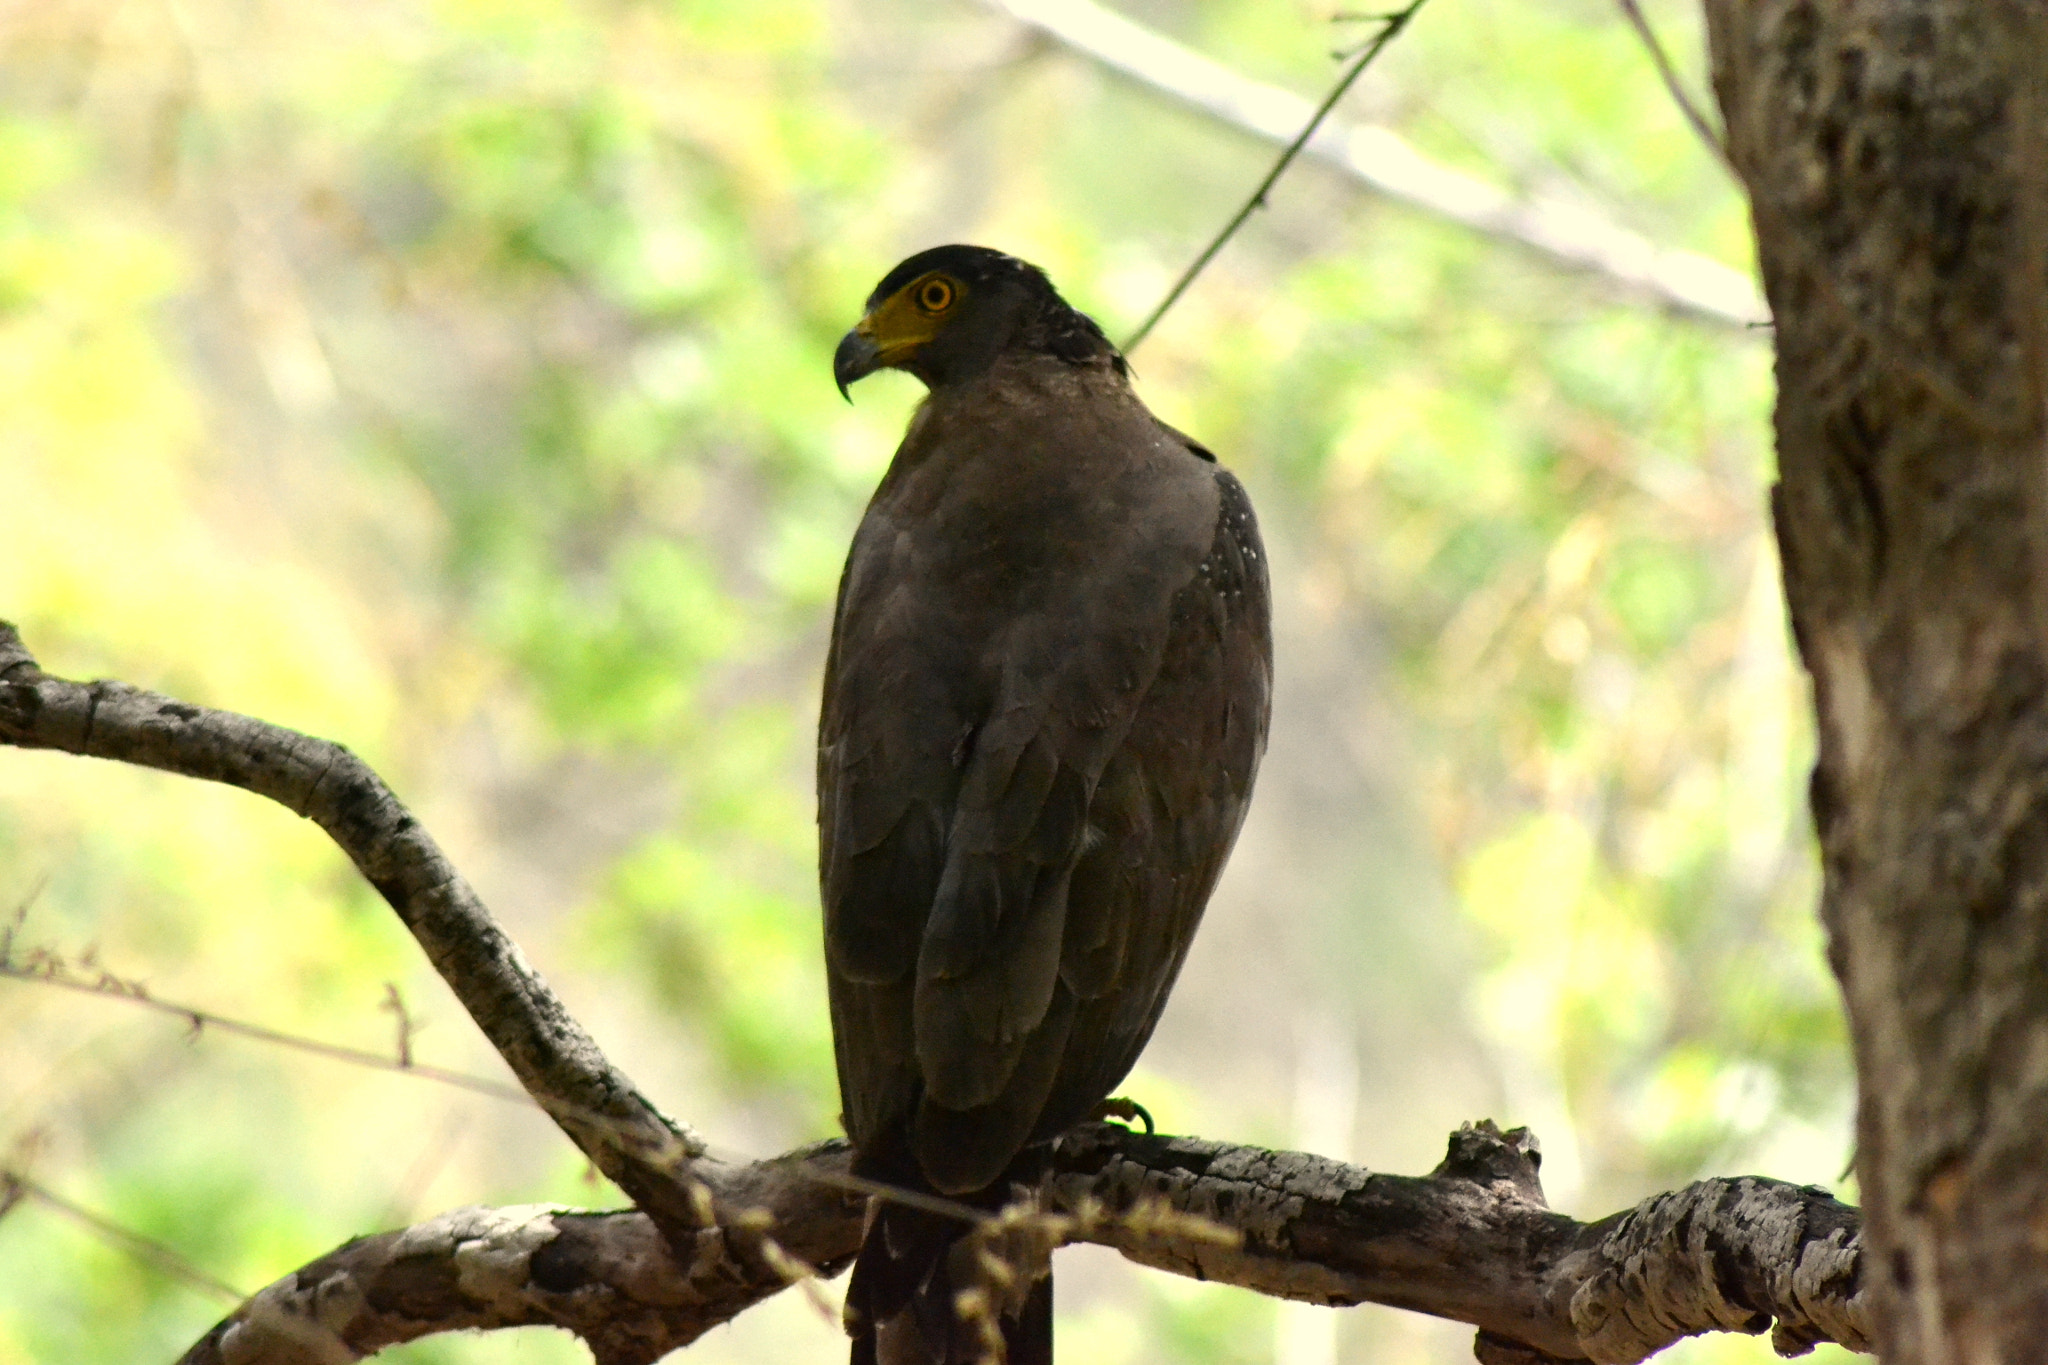 Photograph The Crested Serpent Eagle (Spilornis cheela) by Abhinandan Shukla on 500px